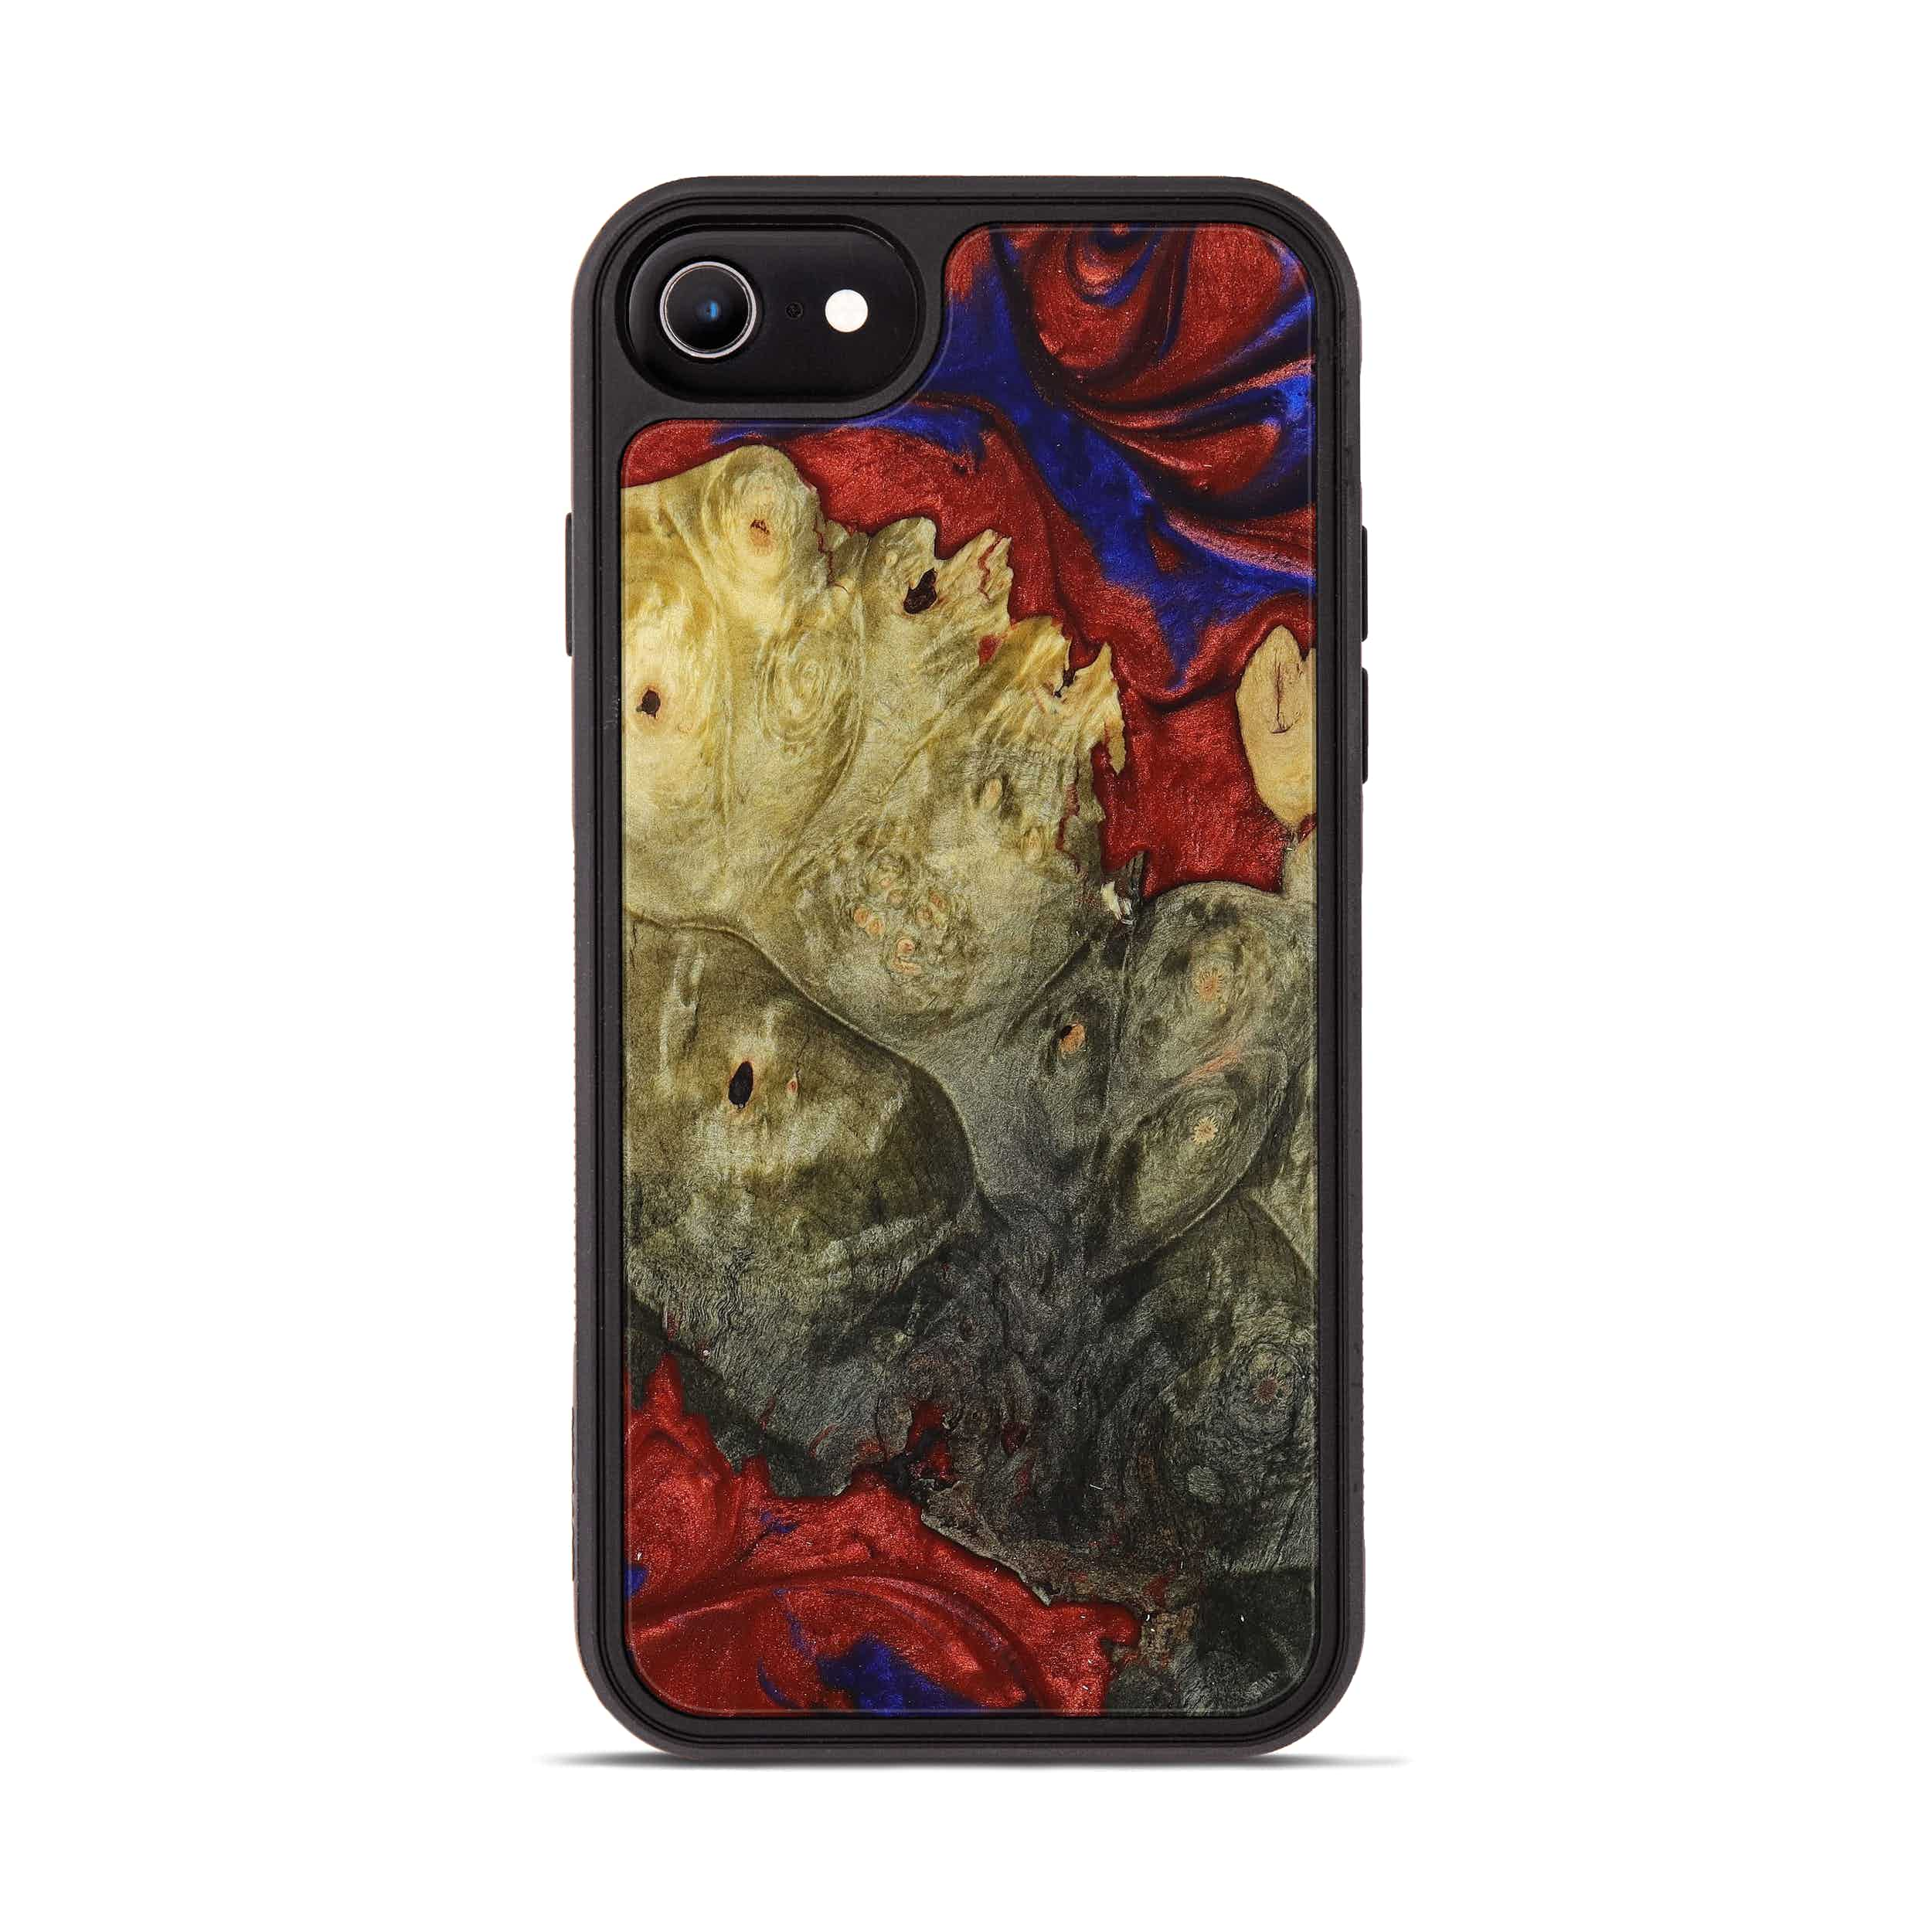 iPhone 6s Wood+Resin Phone Case - Seema (Blue & Red, 395965)